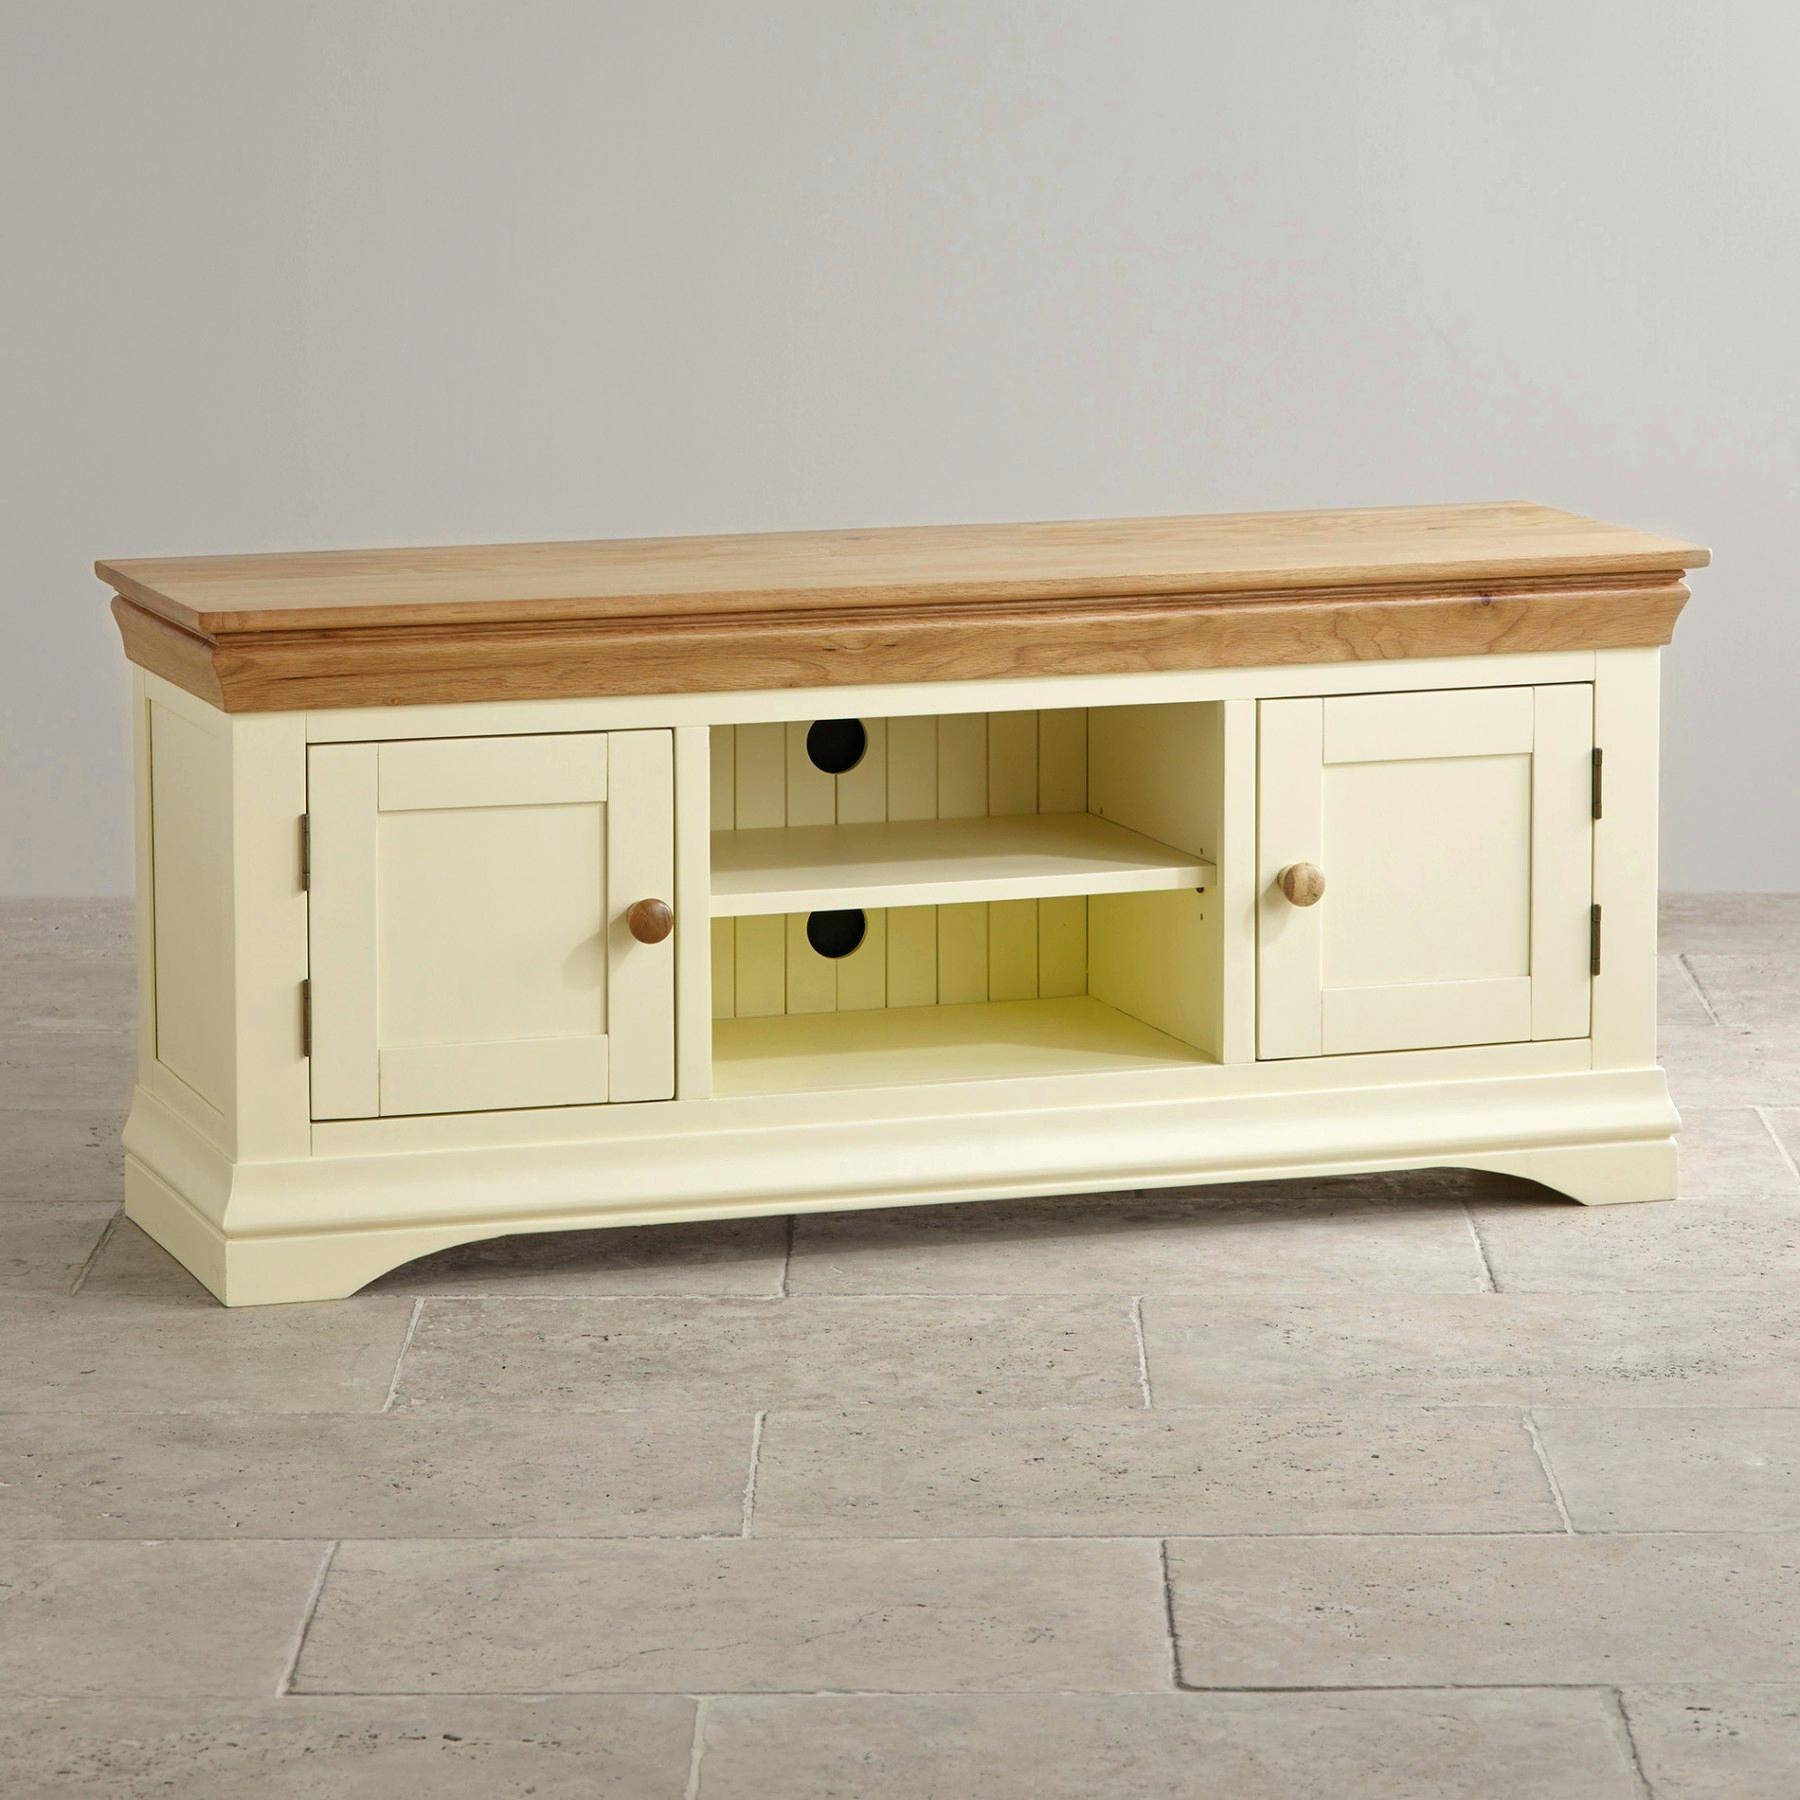 Tv Stand : Large Size Of Tv Standsimpressiveolid Wood Tvtands With Regard To Country Style Tv Cabinets (View 13 of 15)